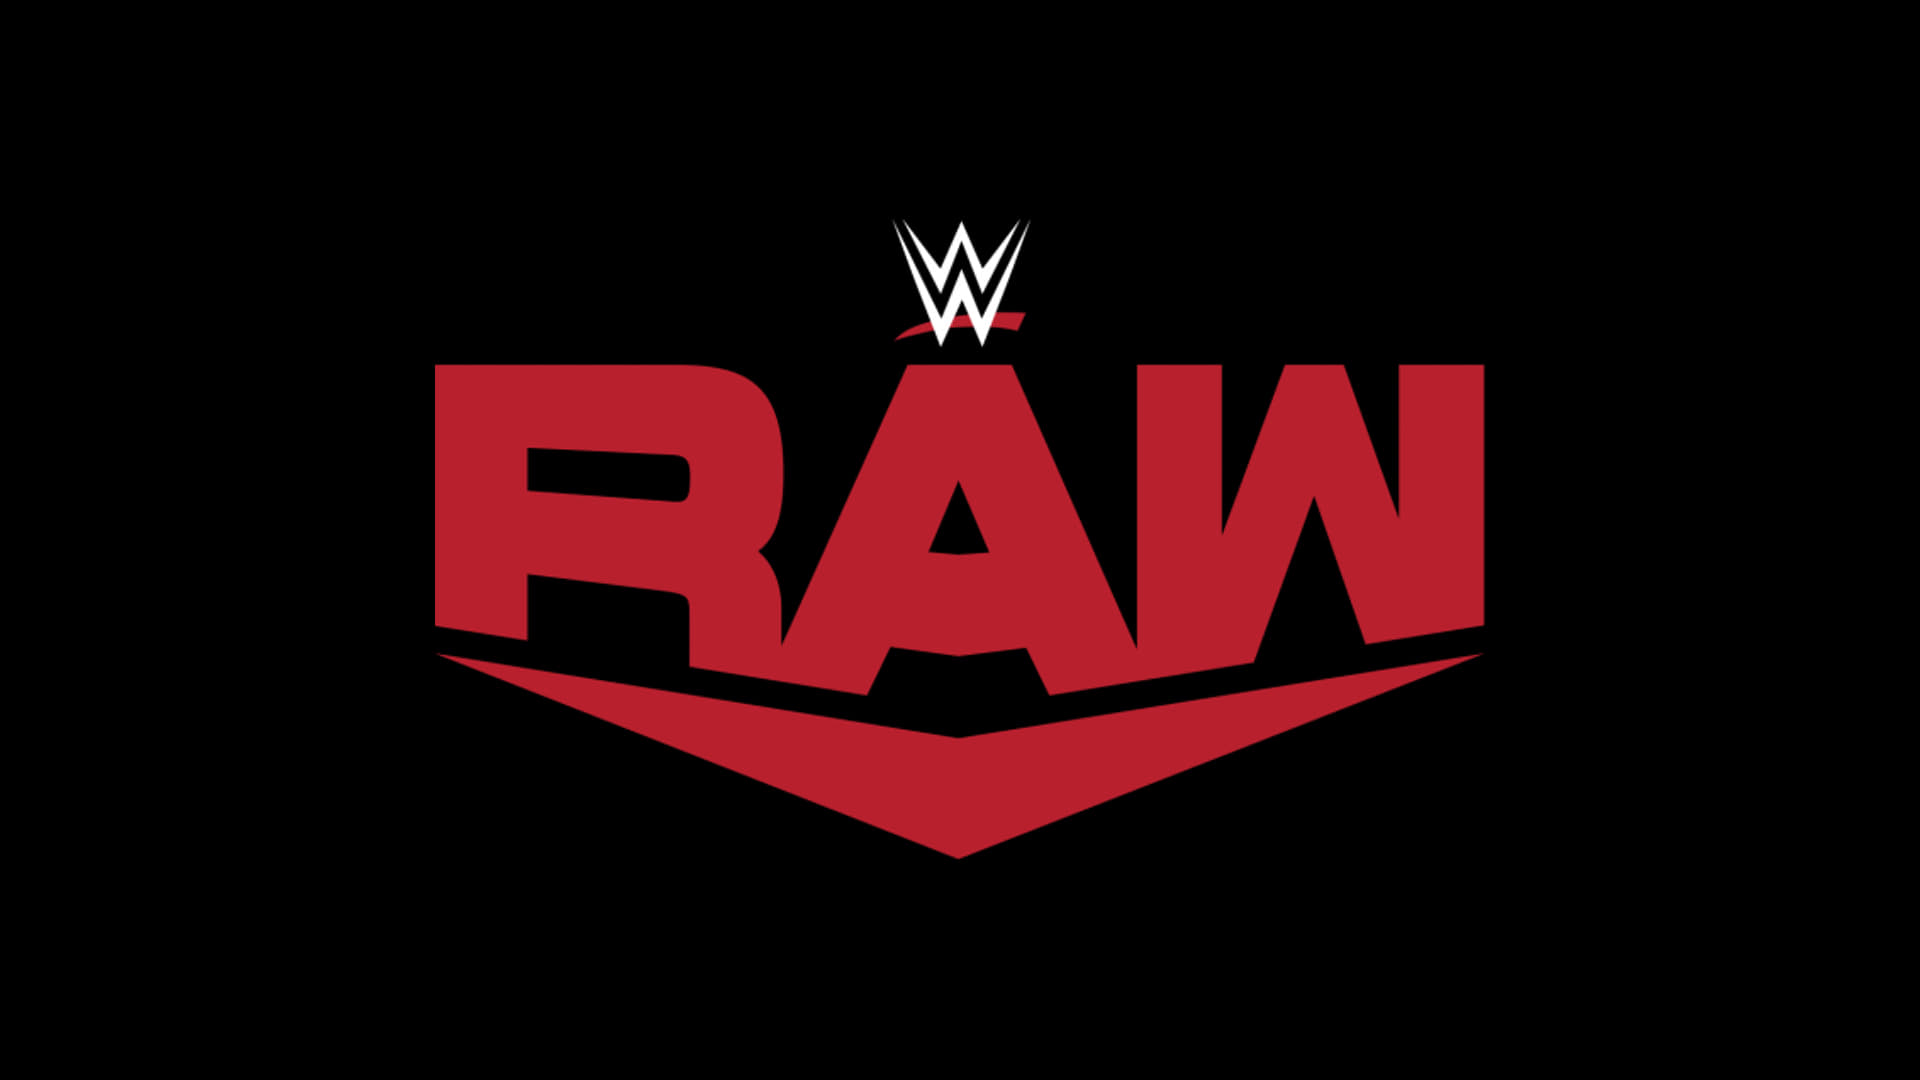 WWE Raw - Season 23 Episode 24 : June 15, 2015 (Cleveland, OH) (1970)